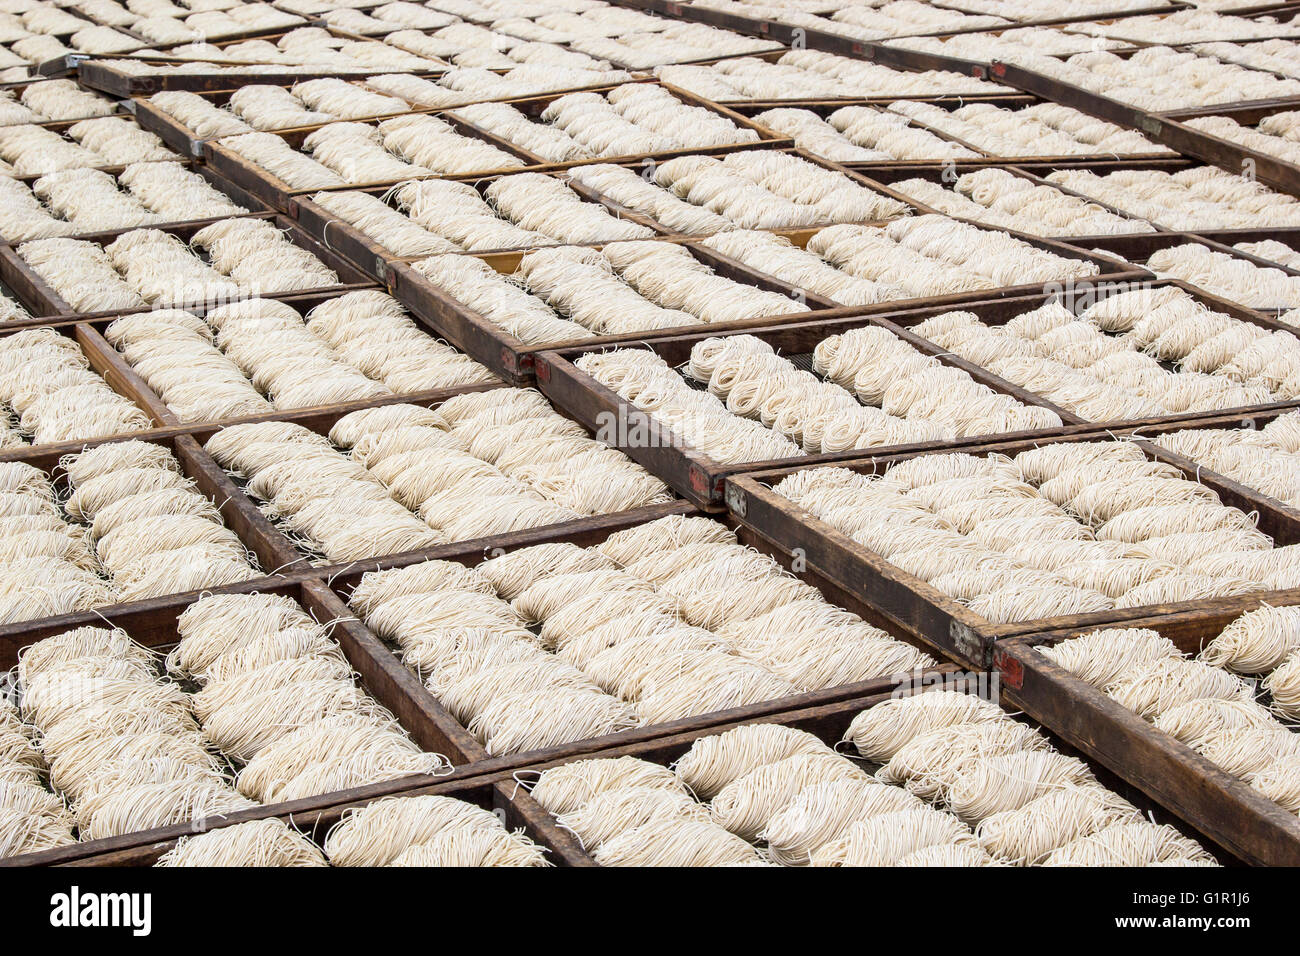 Many chinese noodles drying under the sun in wooden trays - Stock Image